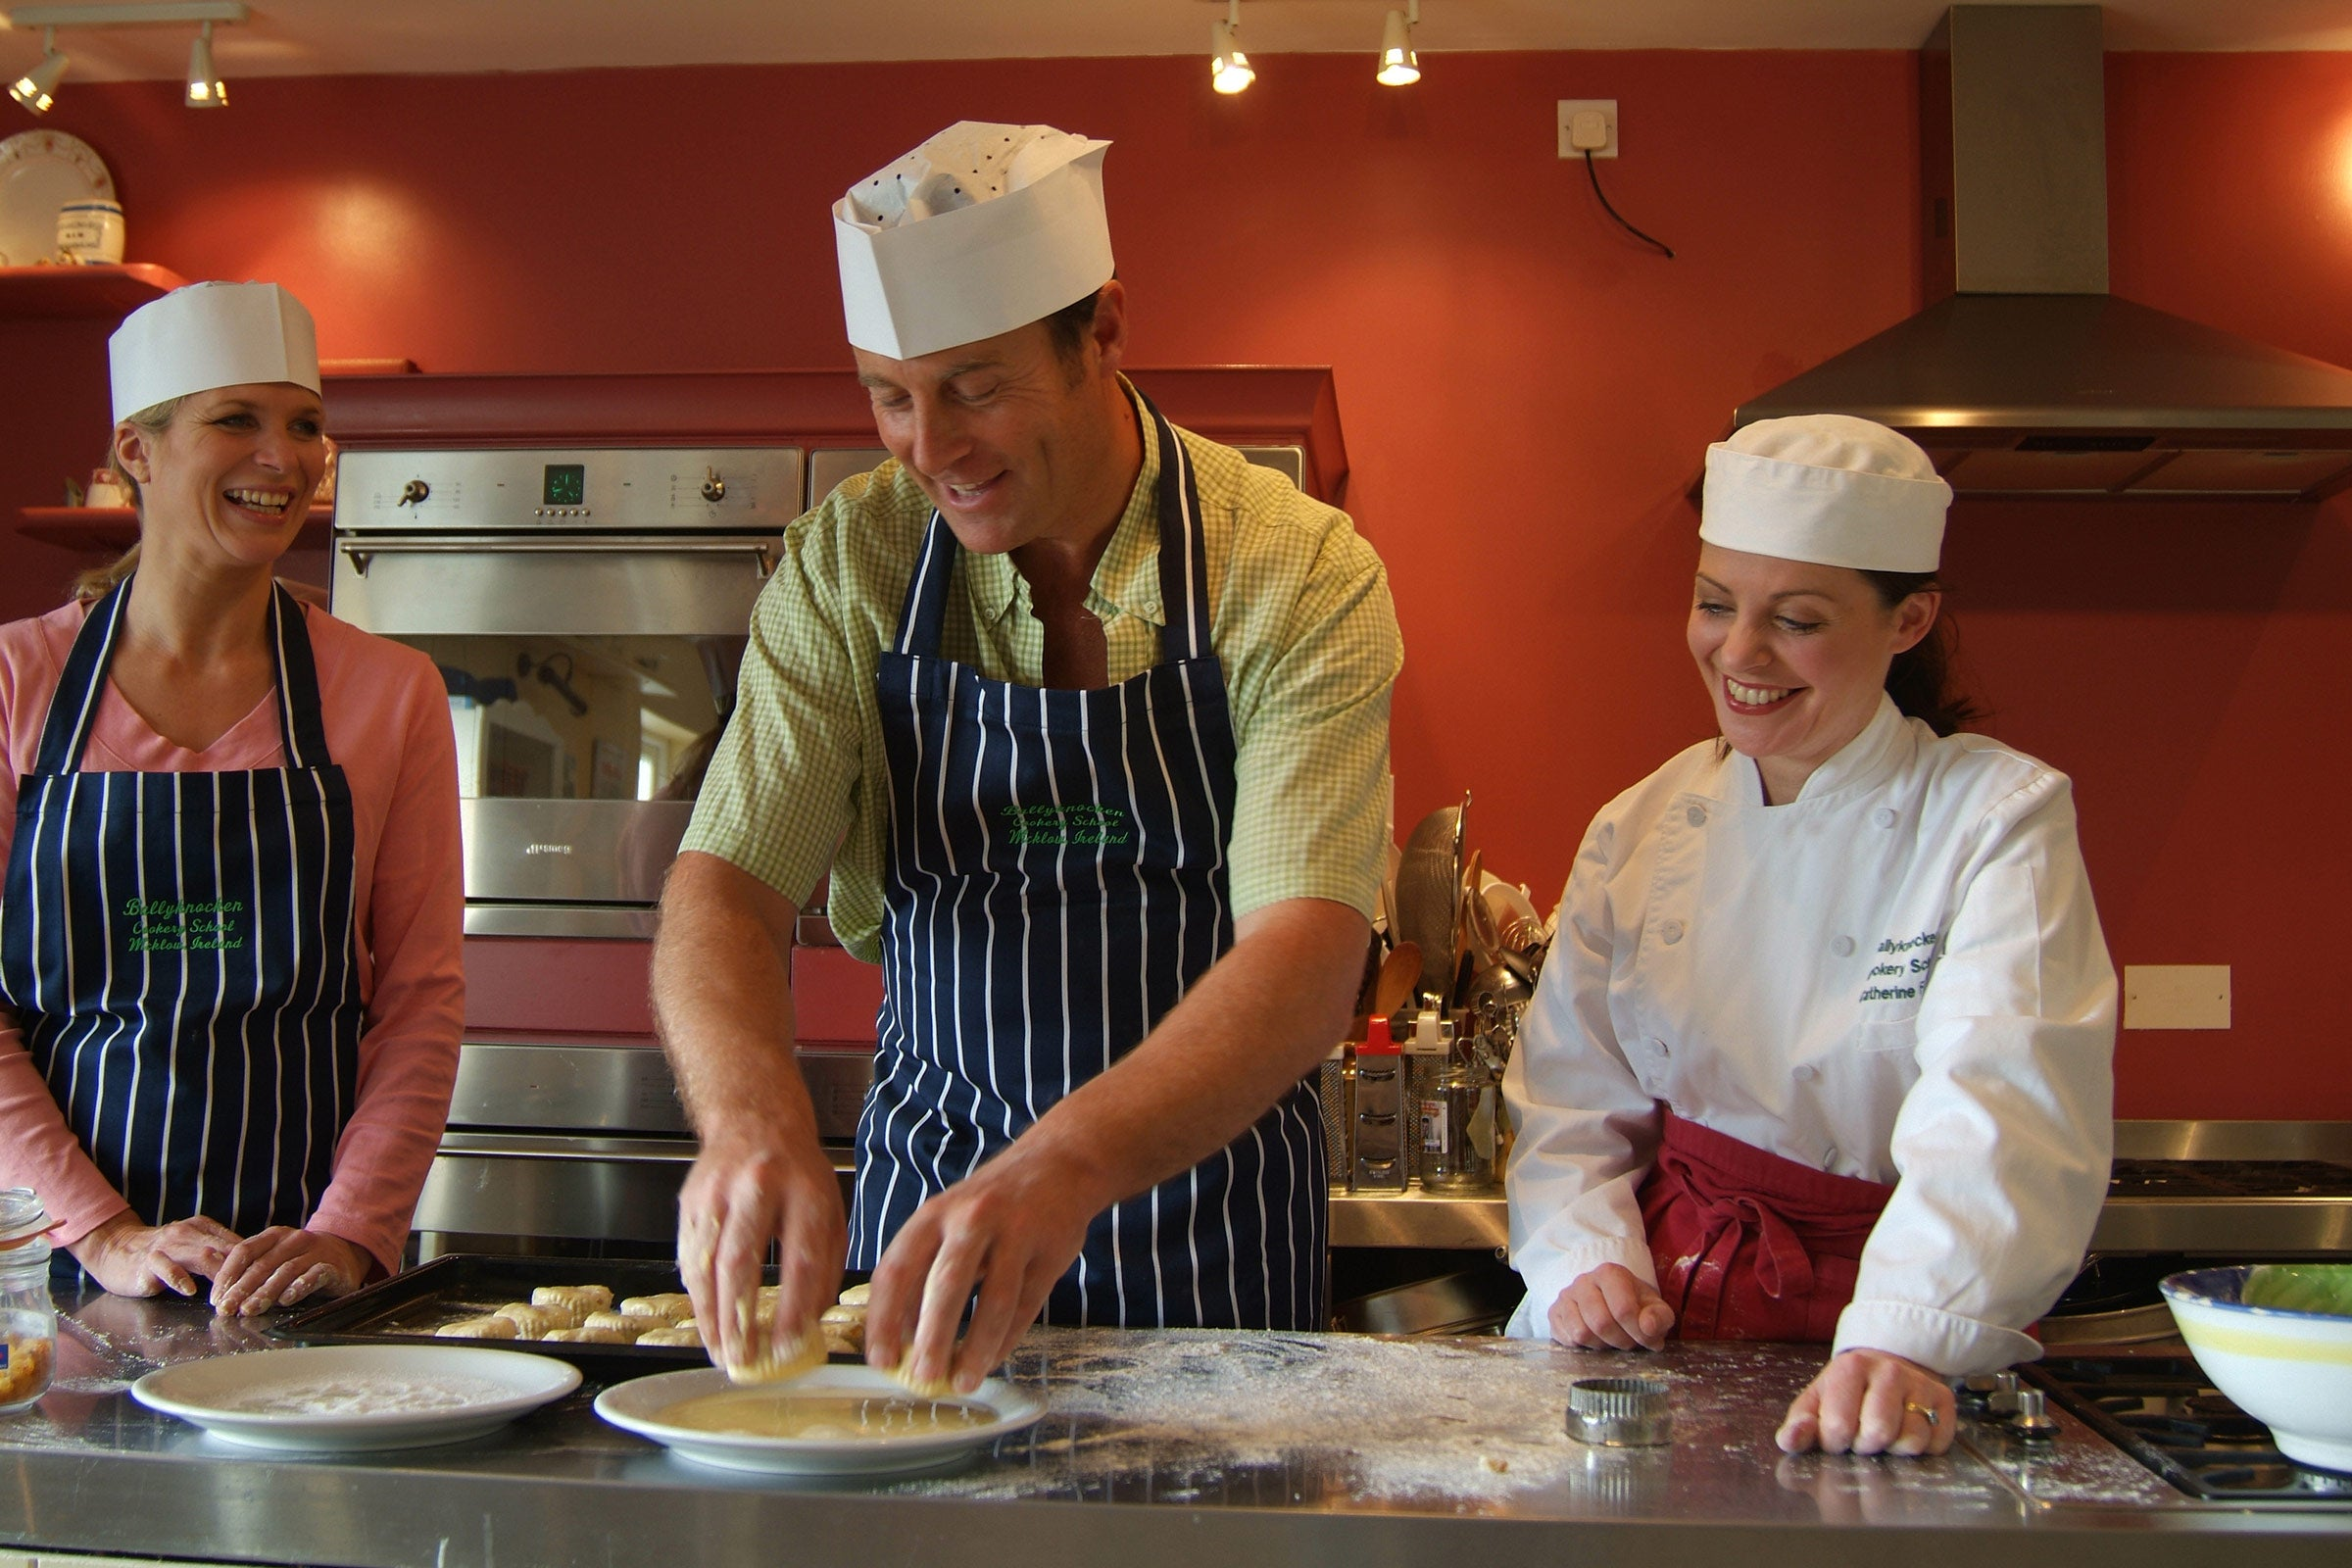 A chef showing two students how to cook in a red kitchen in Ballyknocken, County Wicklow